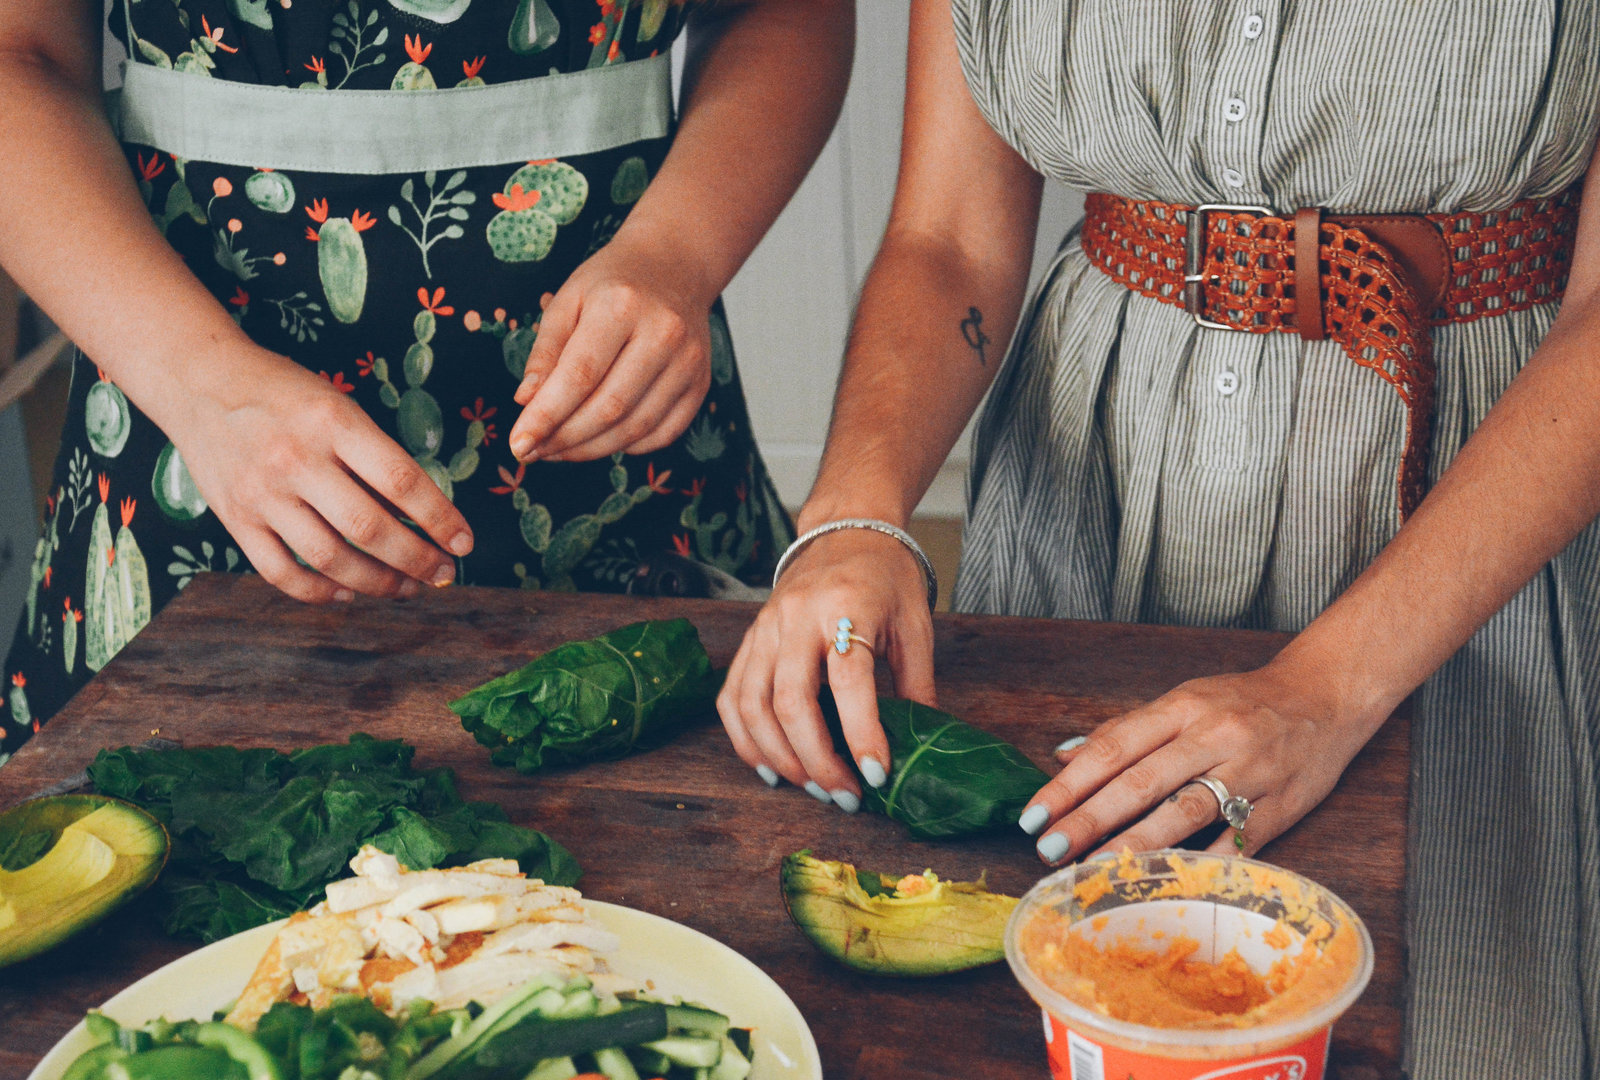 Hands-on, experiential cooking lessons | Jenna Bee Nutrition